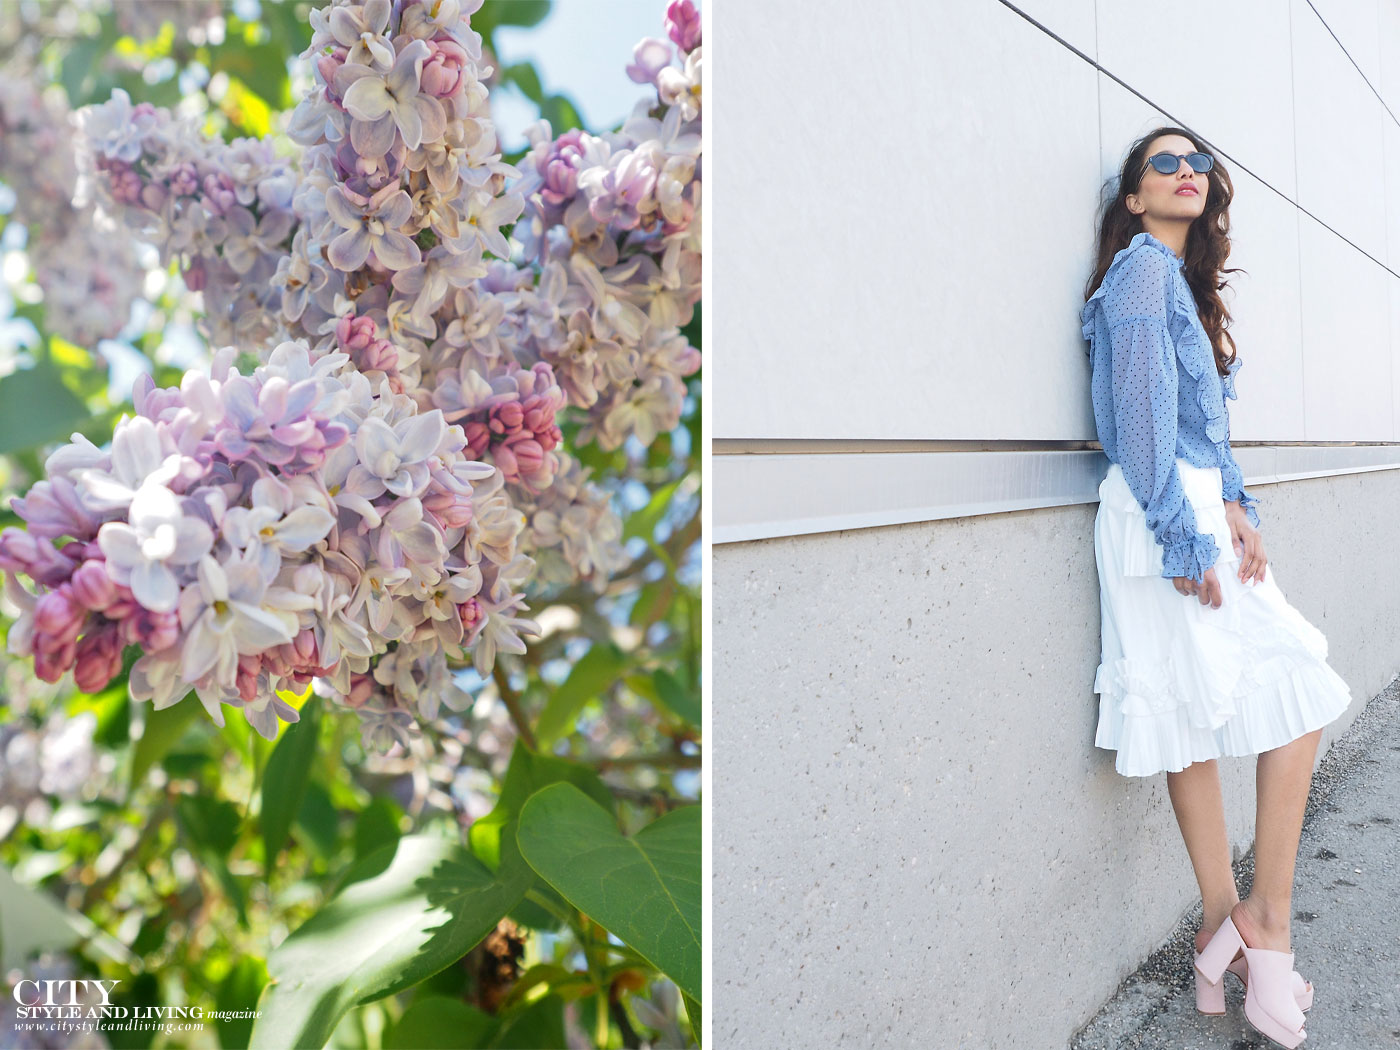 City style and living magazine The Editors Notebook style fashion blogger Shivana Maharaj how to wear frills for spring 2017 lilacs in calgary